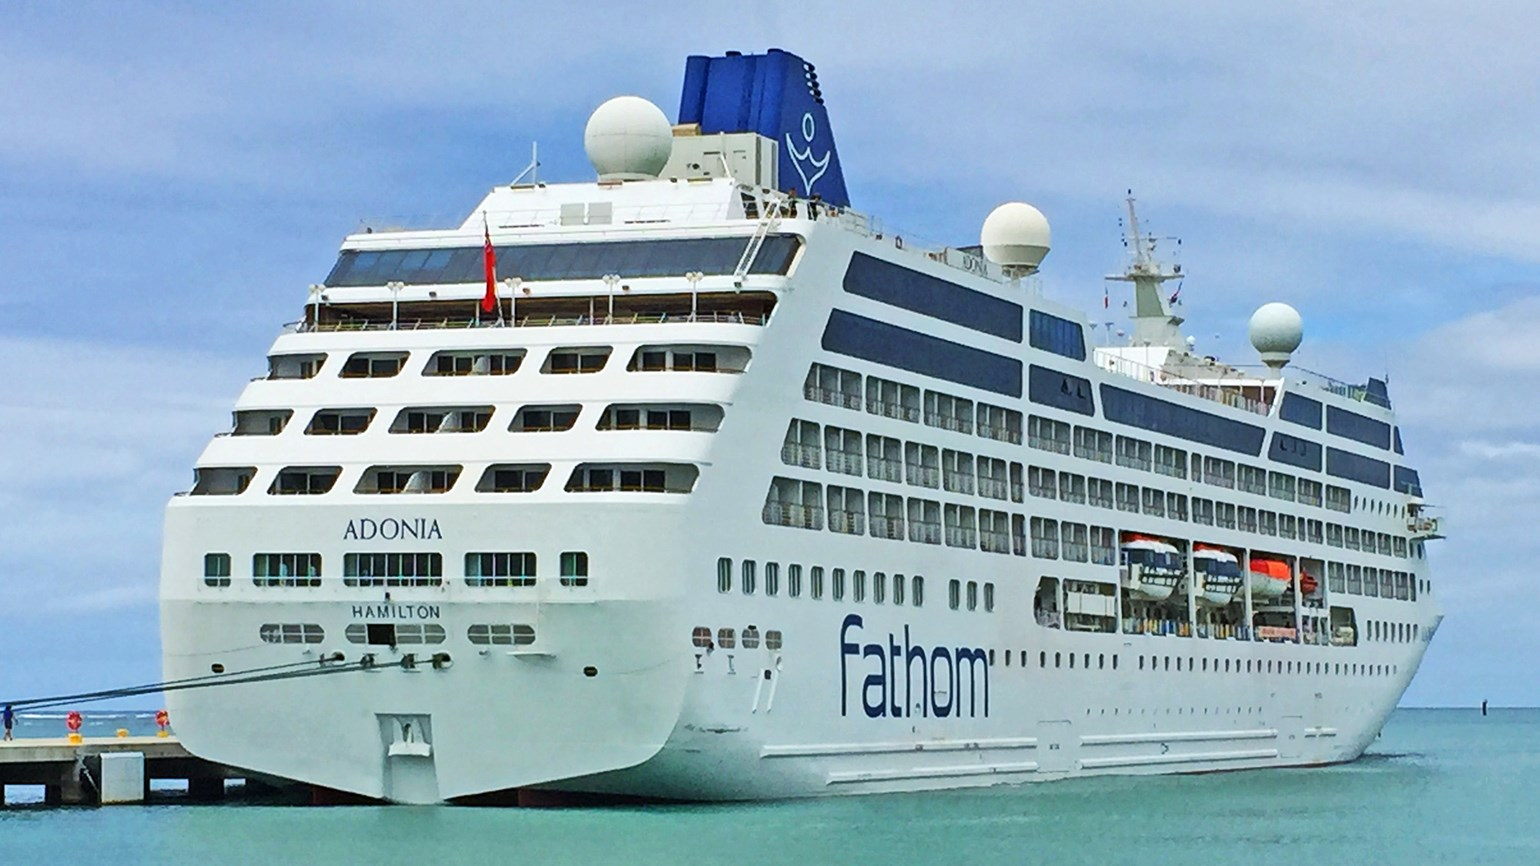 Fathom cruises going away, but brand remains for excursions